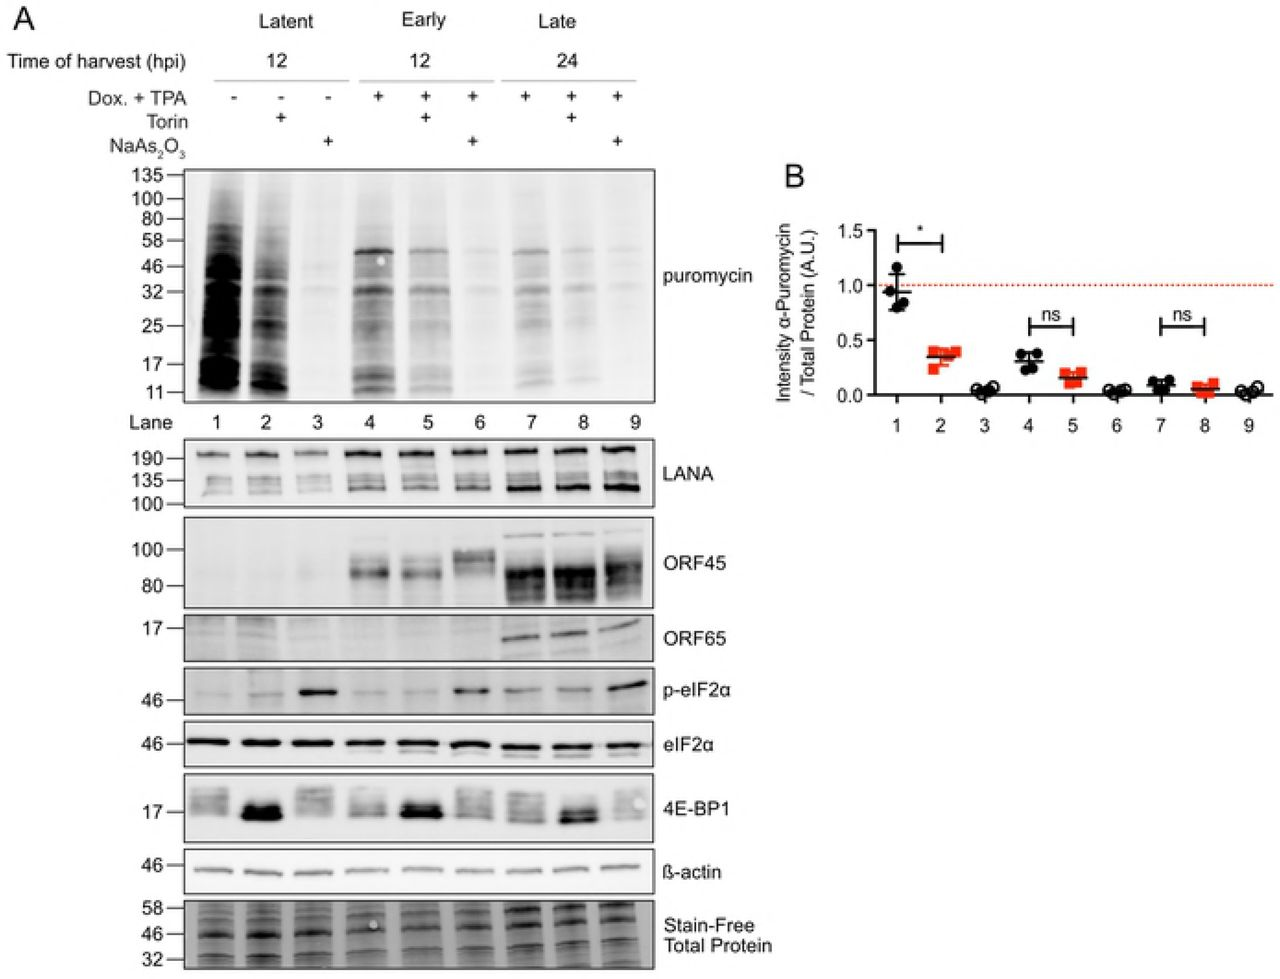 eIF4F disassembly does not deplete viral mRNAs from polysomes. (A) Polysome profile of TRex-BCBLl-RTA cells induced with 1 µg/mL dox for 24 h. Torin or DMSO control were added 2 h prior to harvest and polysome analysis. (B) qRT-PCR analysis of cellular and viral transcripts in polysome fractions. Total RNA was isolated from polysome fractions. RNA was co-precipitated with GlycoBlue and T7-transcribed luciferase RNA to improve and normalize for recovery. RNA was analysed by qRT-PCR for cellular, and viral transcripts. Vertical lines depict the boundaries between the monosomes, light polysome, and heavy polysome fractions (n= 3; means±SEM; statistical significance was determined by two-way ANOVA).